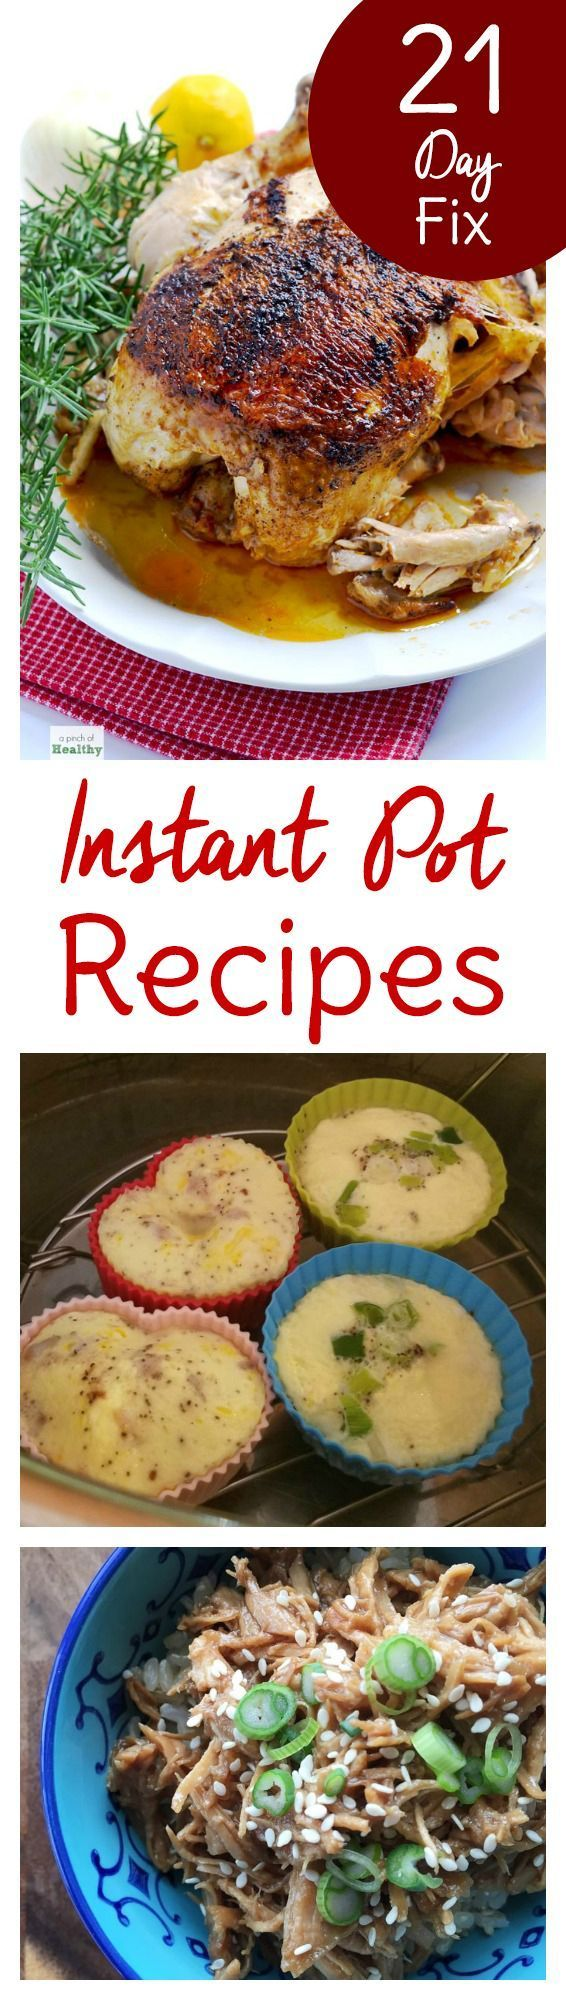 Starting a clean eating plan? These 21 Day Fix Instant Pot recipes will help you stay on track with your 21 Day Fix diet. Set yourself up for success with easy dinners. Preparation and making things as convenient as possible is the key to sticking with any new meal plan or diet. Let your pressure cooker take some of the work out of the equation and you've got that much more time to complete your Beach Body workouts!